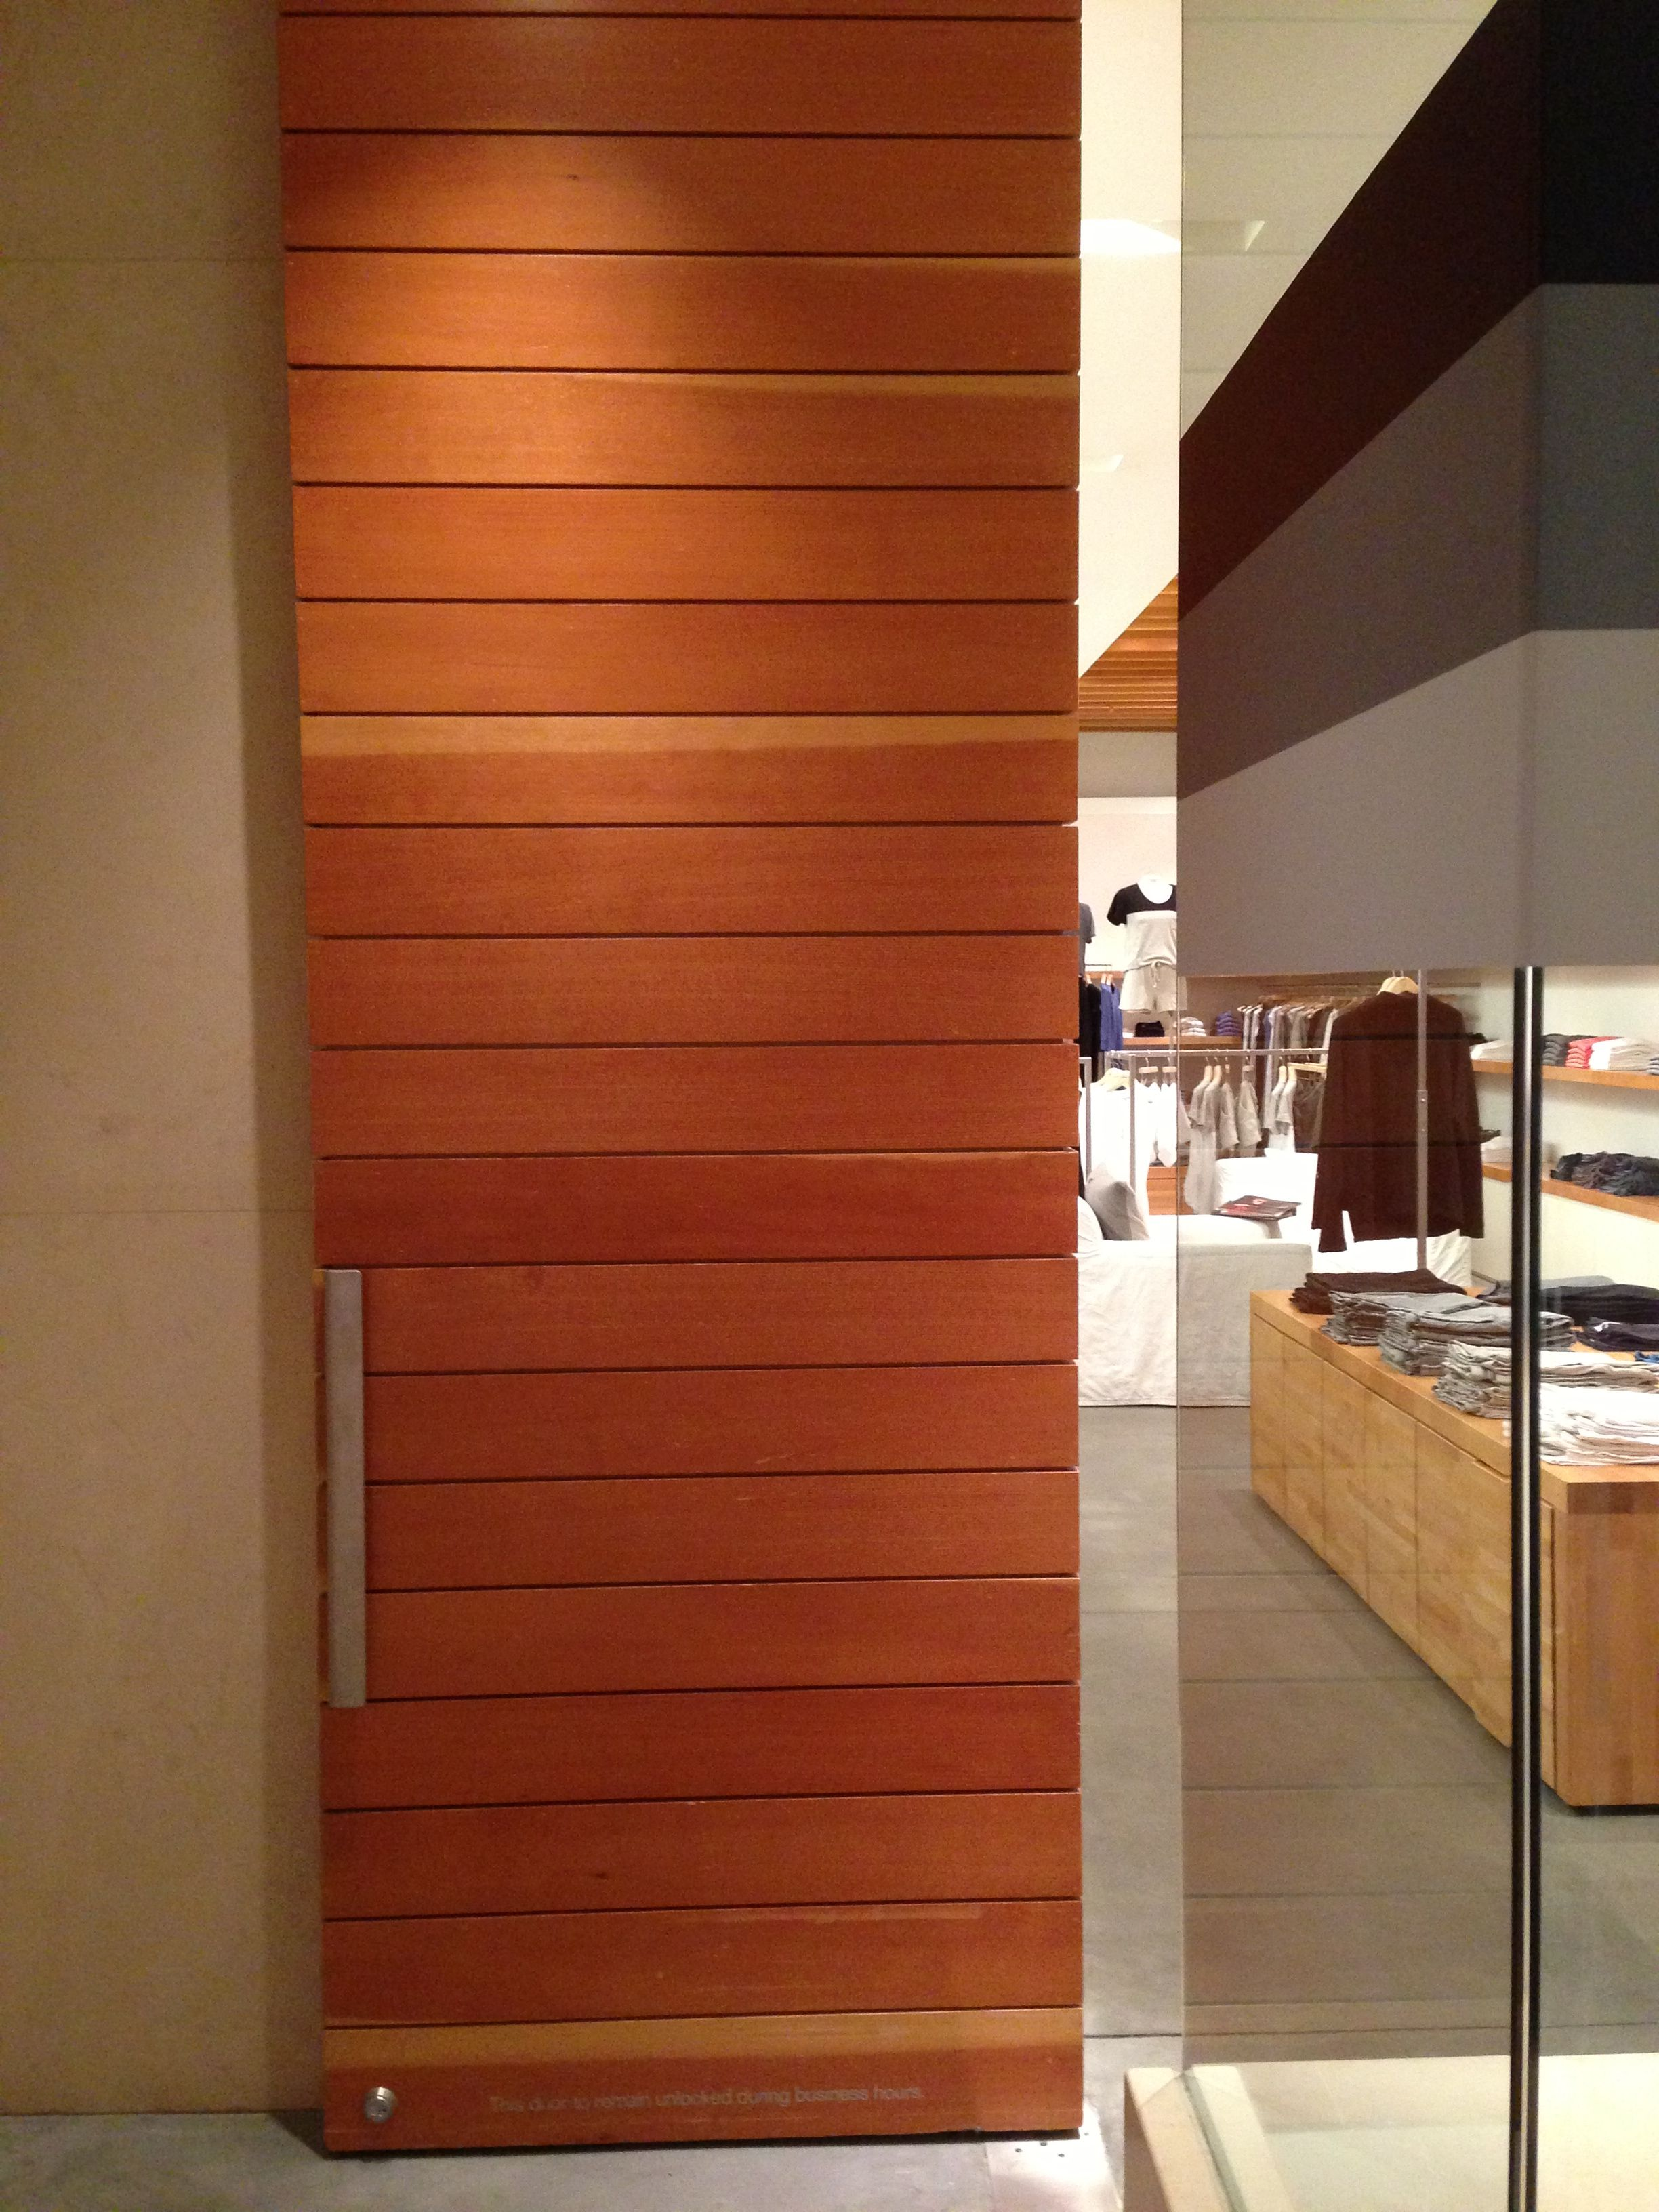 Douglas Fir Door At Store Entry At The Forum Shops In Las Vegas